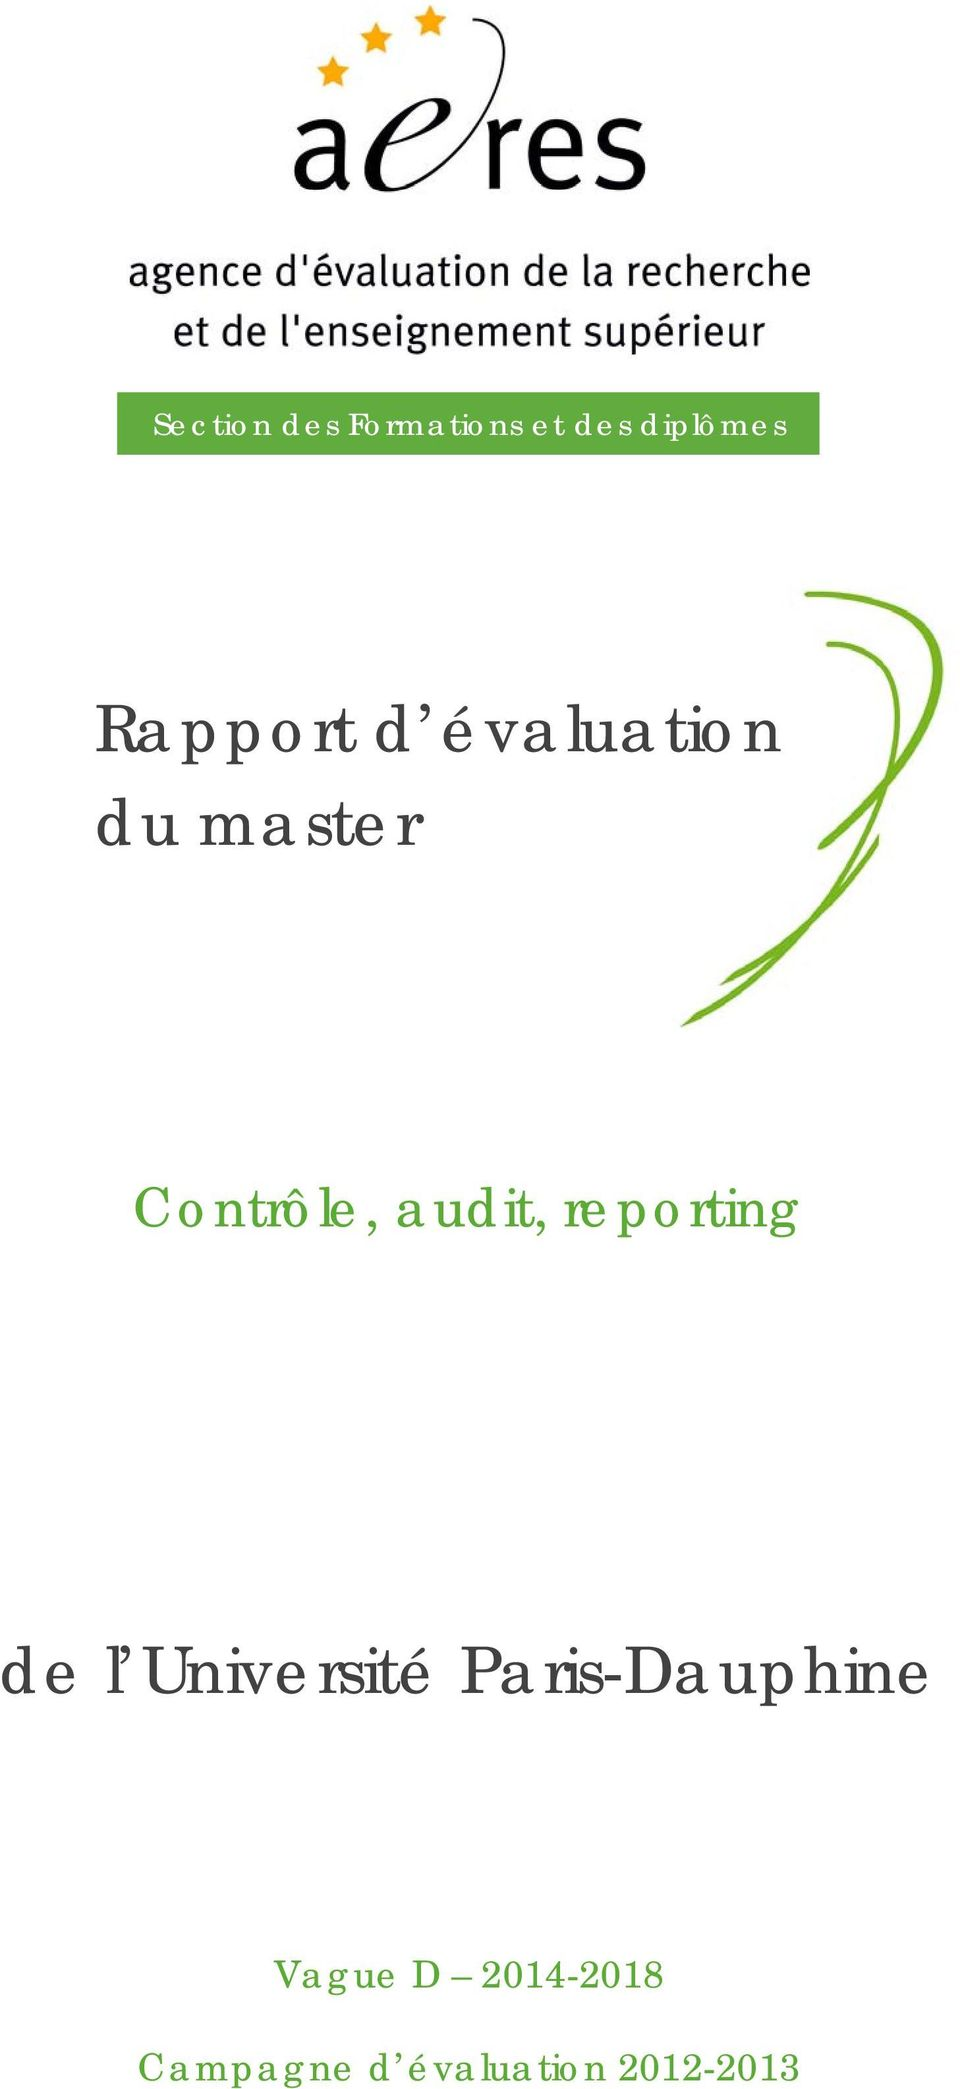 audit, reporting de l Université